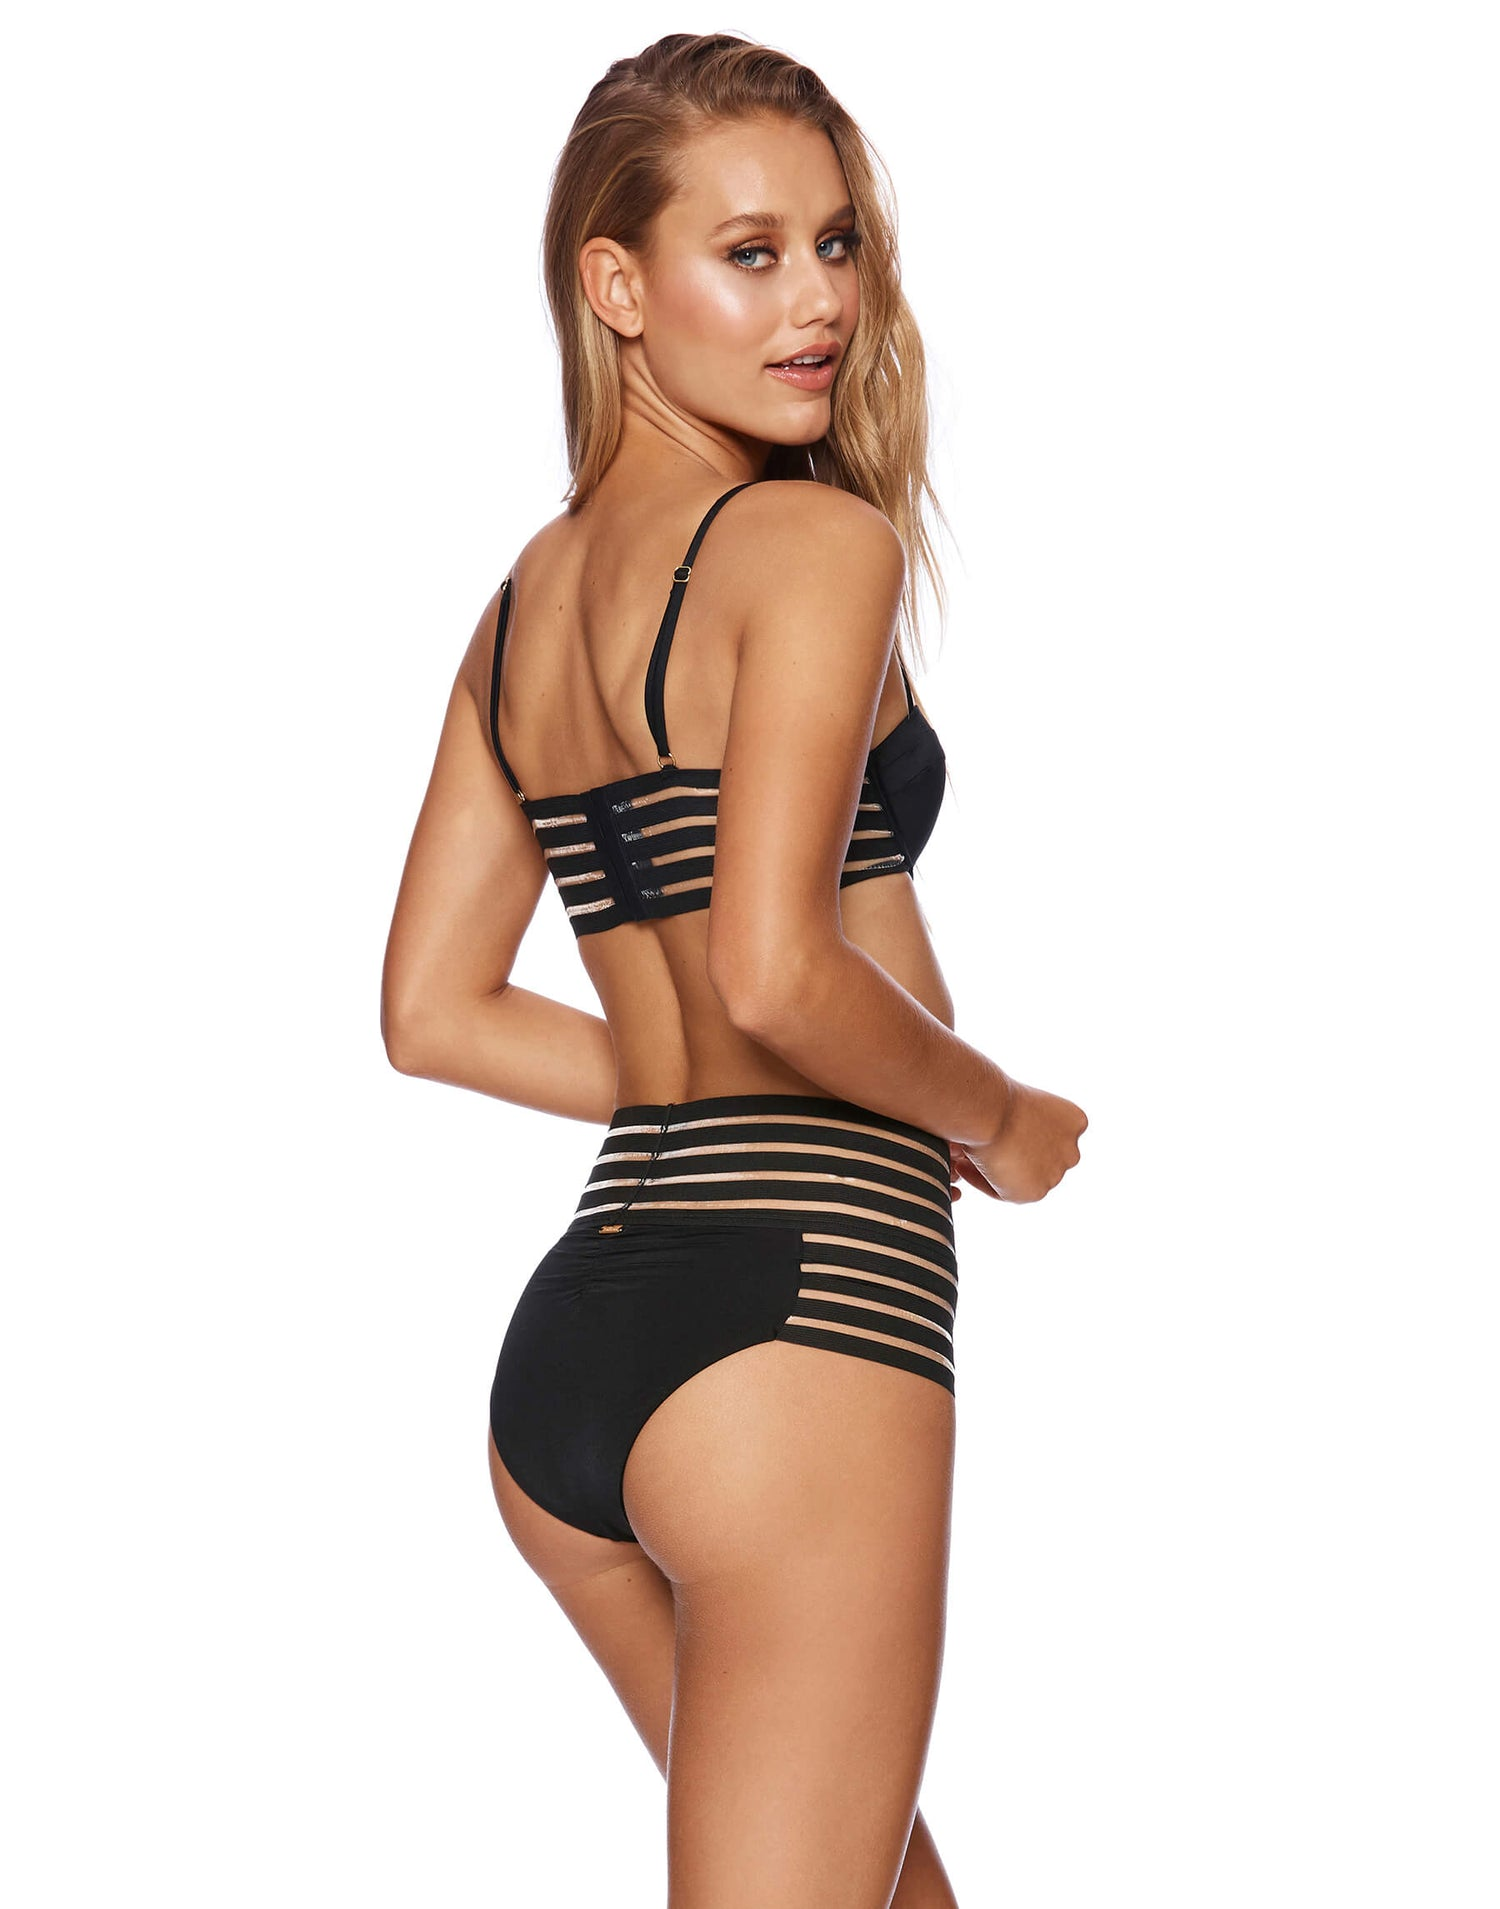 Sheer Addiction Balconette Bikini Top in Black with Sheer Elastic Stripes - back view